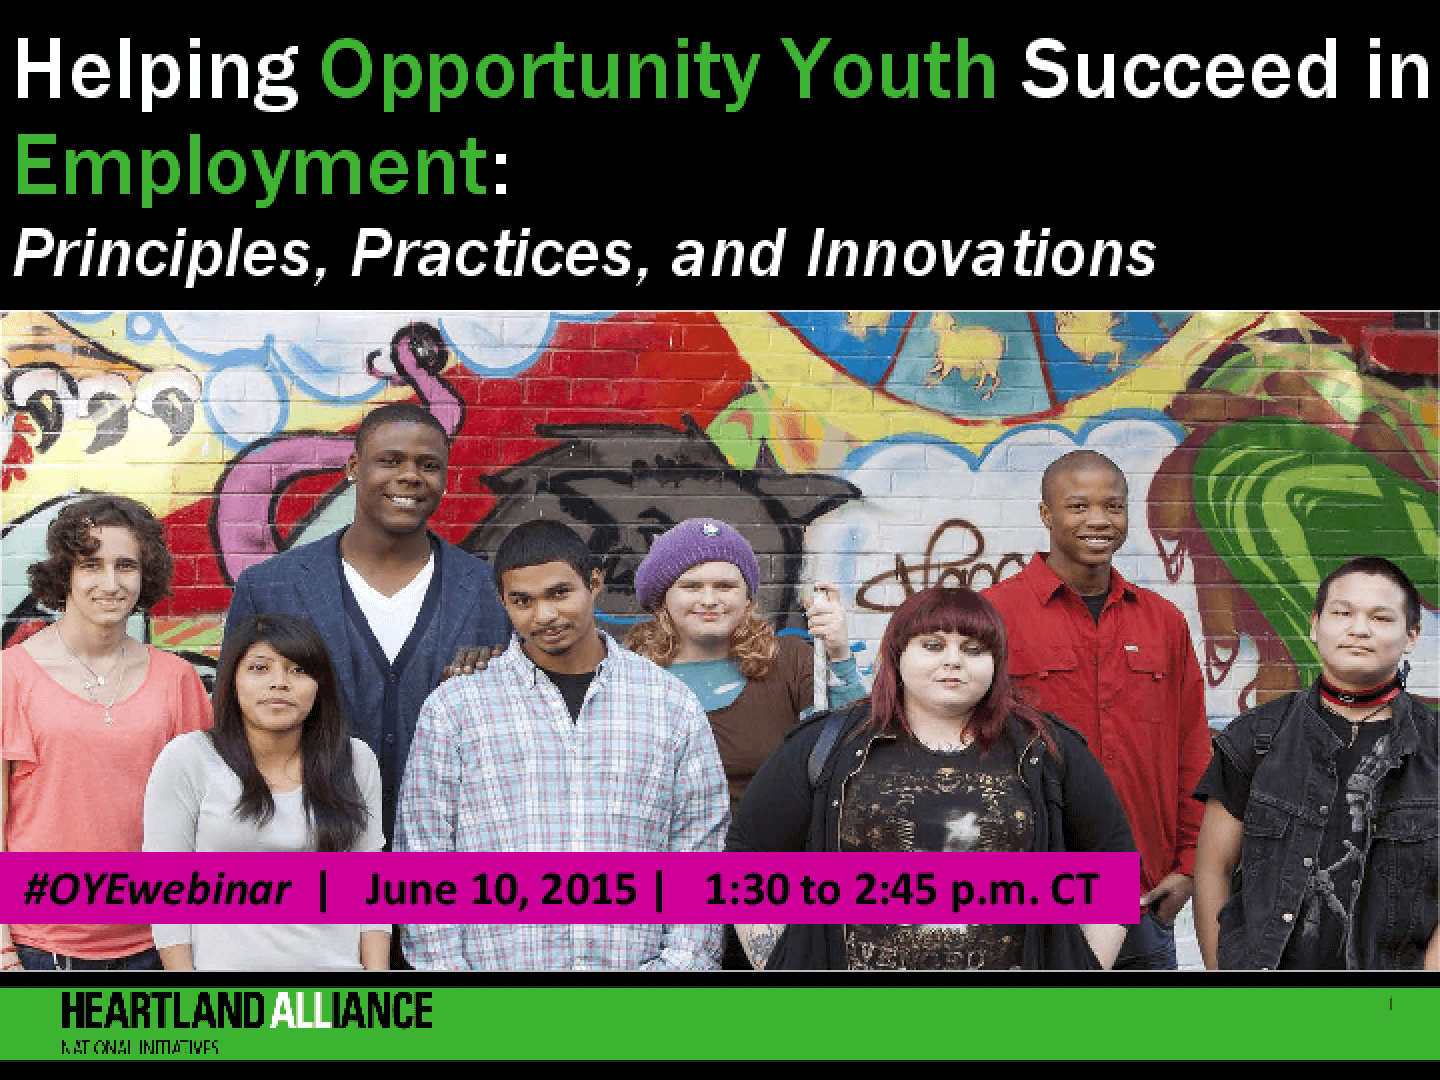 Webinar slides: Helping Opportunity Youth Succeed in Employment: Principles, Practices, and Innovations